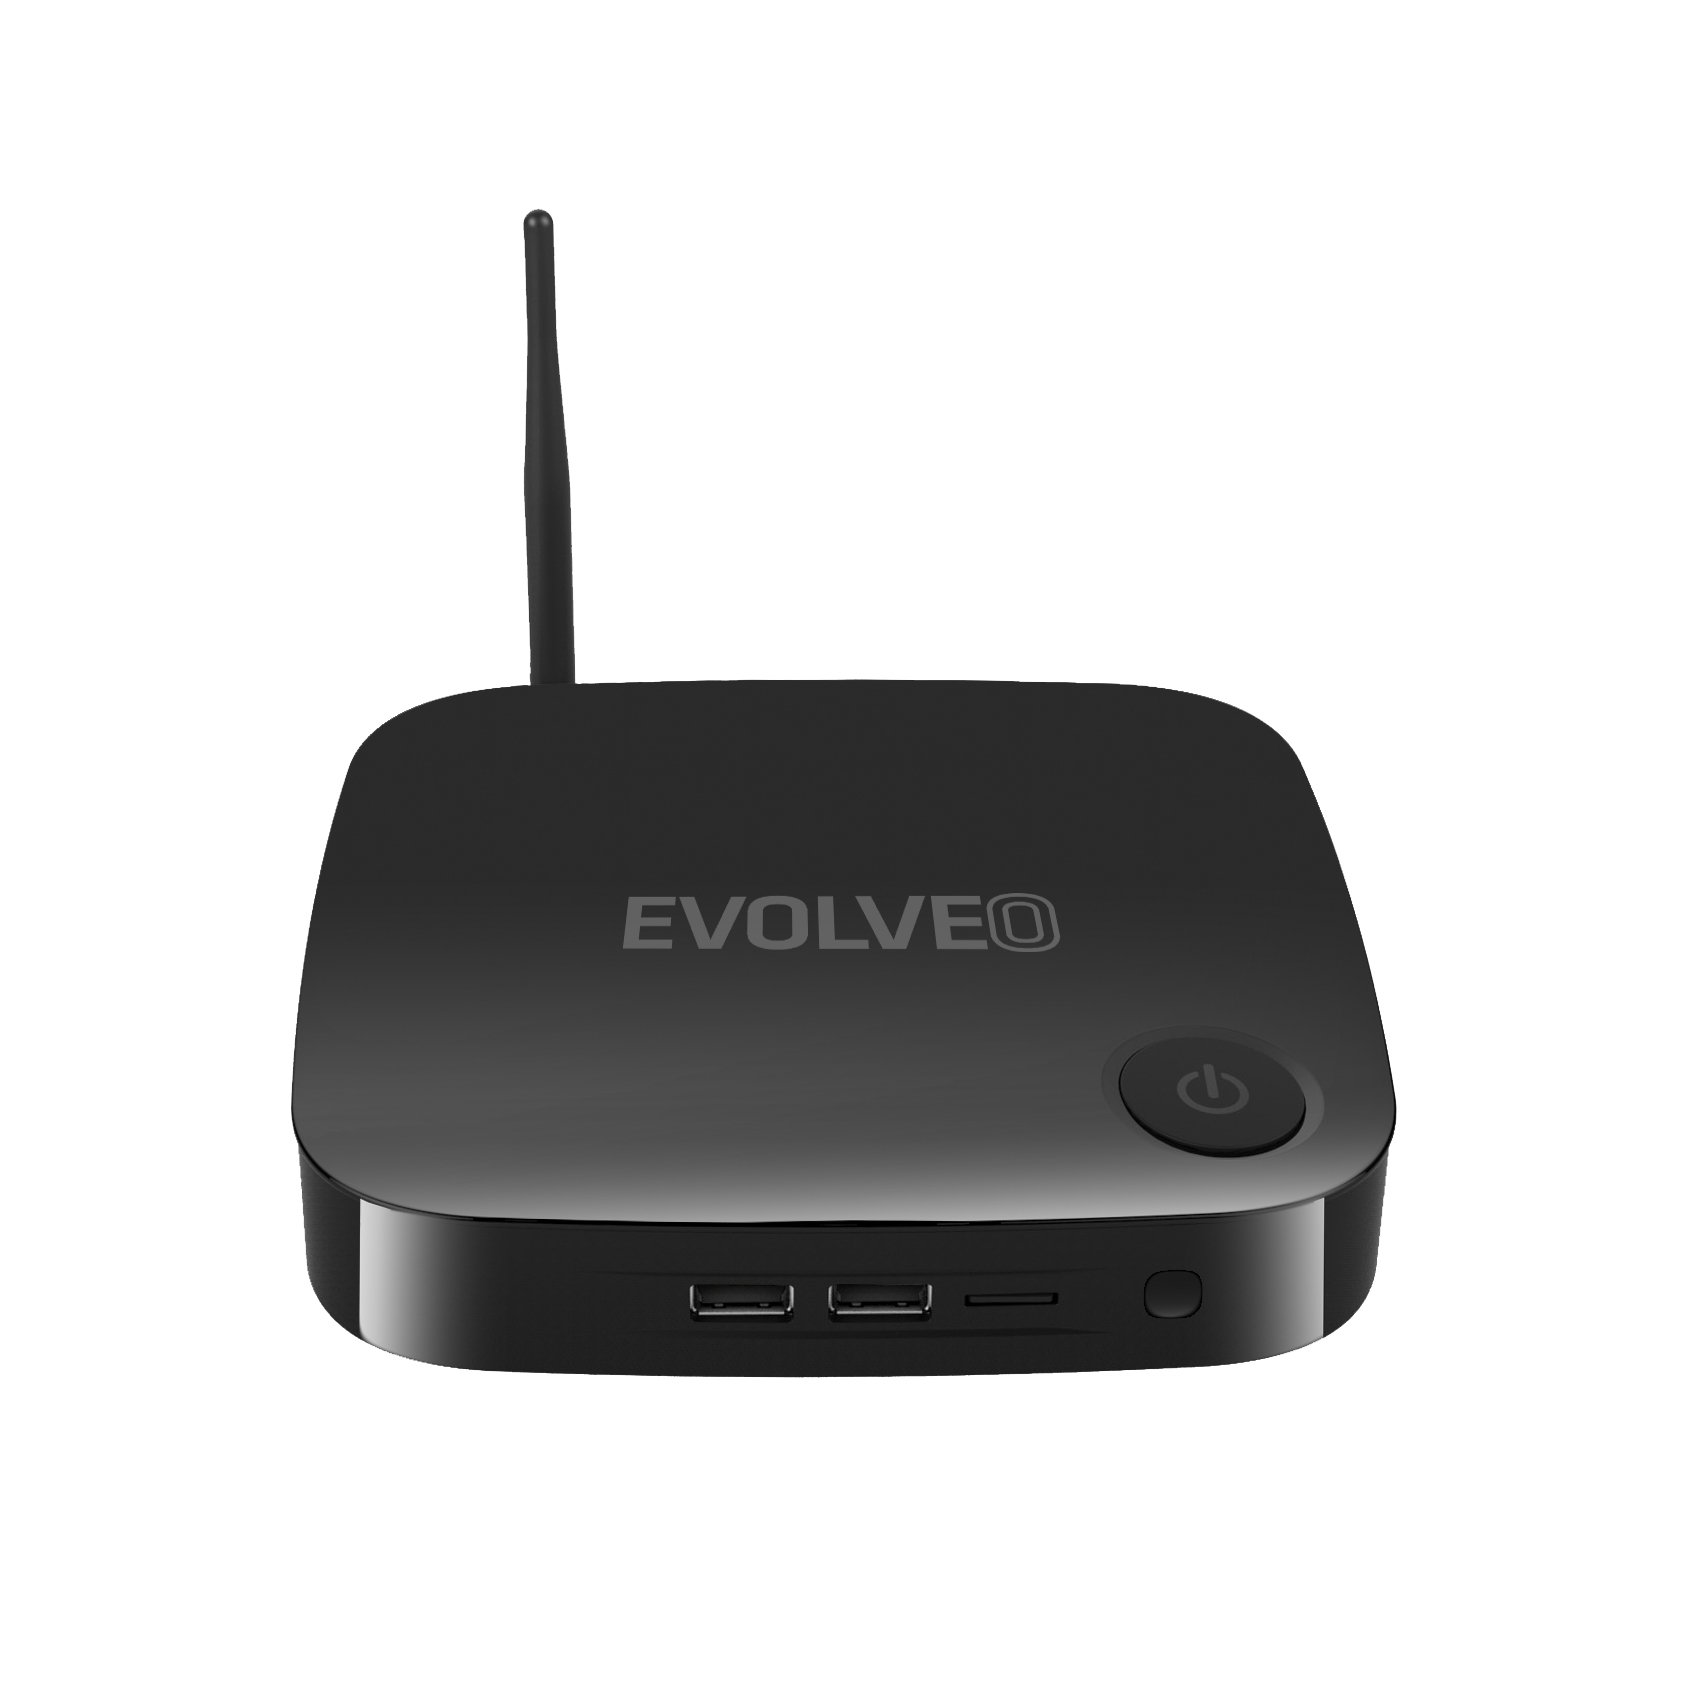 EVOLVEO WinPC X5, Quad Core Intel personal computer with Windows 10]